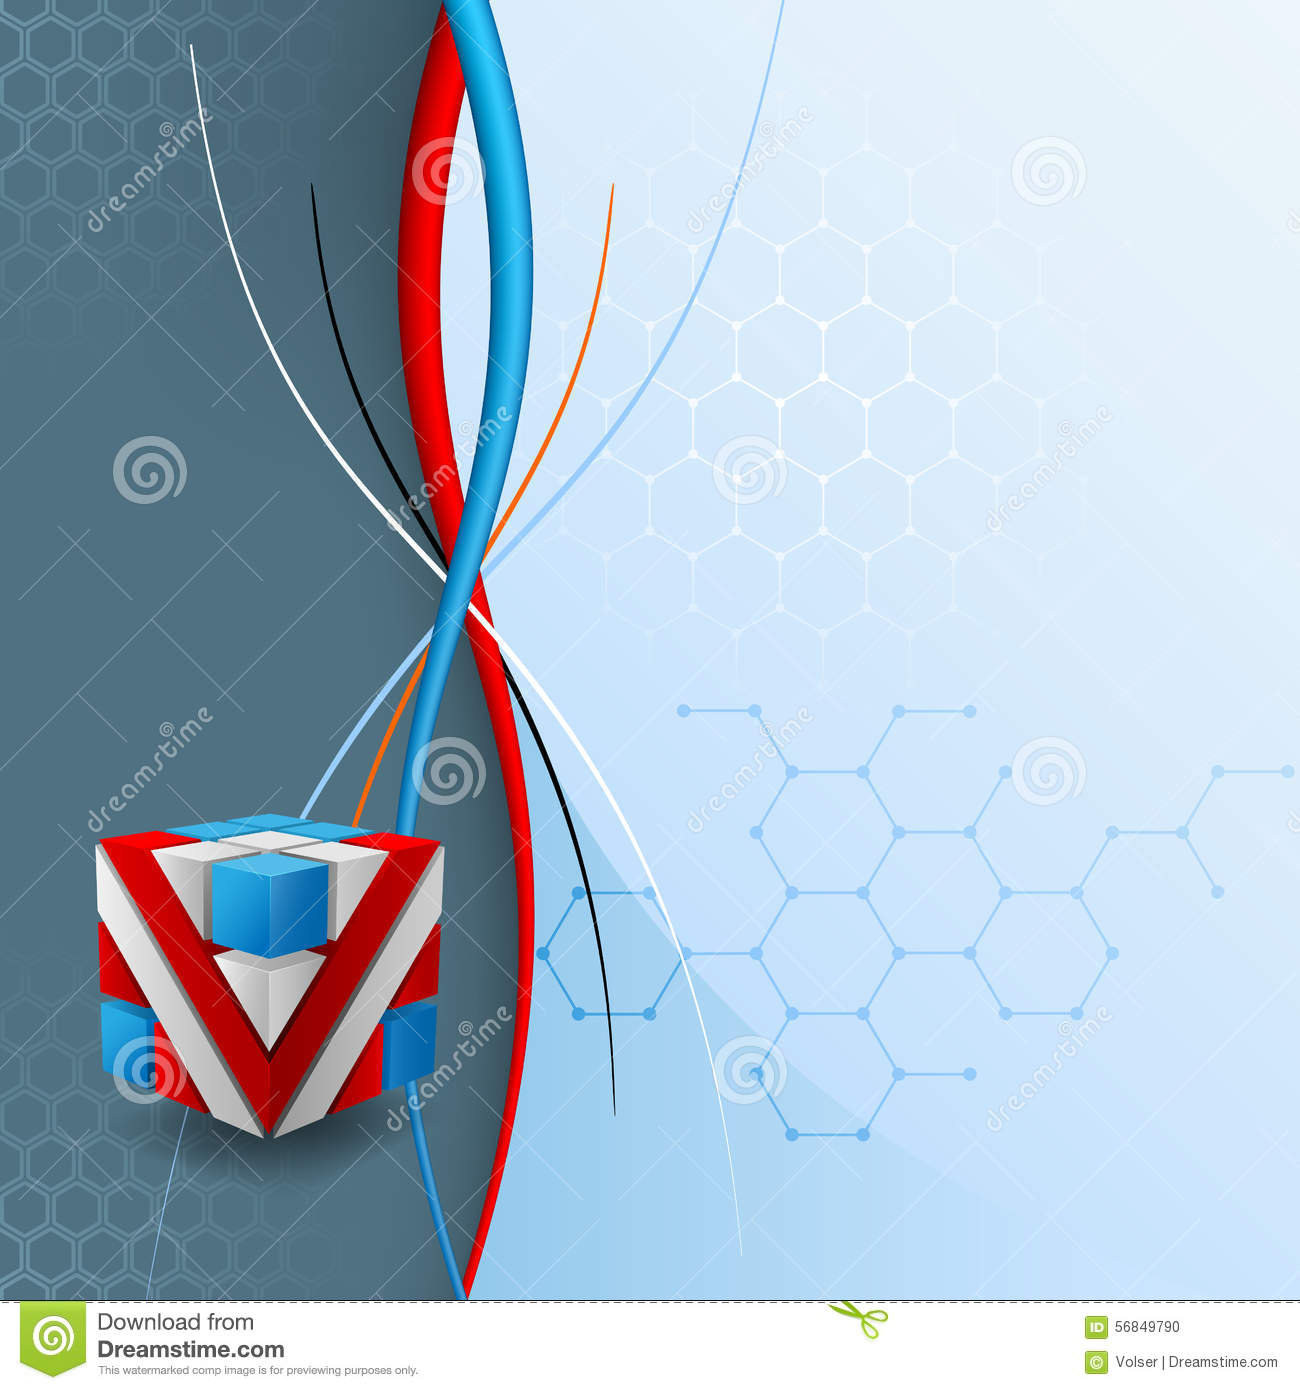 Design Template For Abstract Technology Background With Three ...